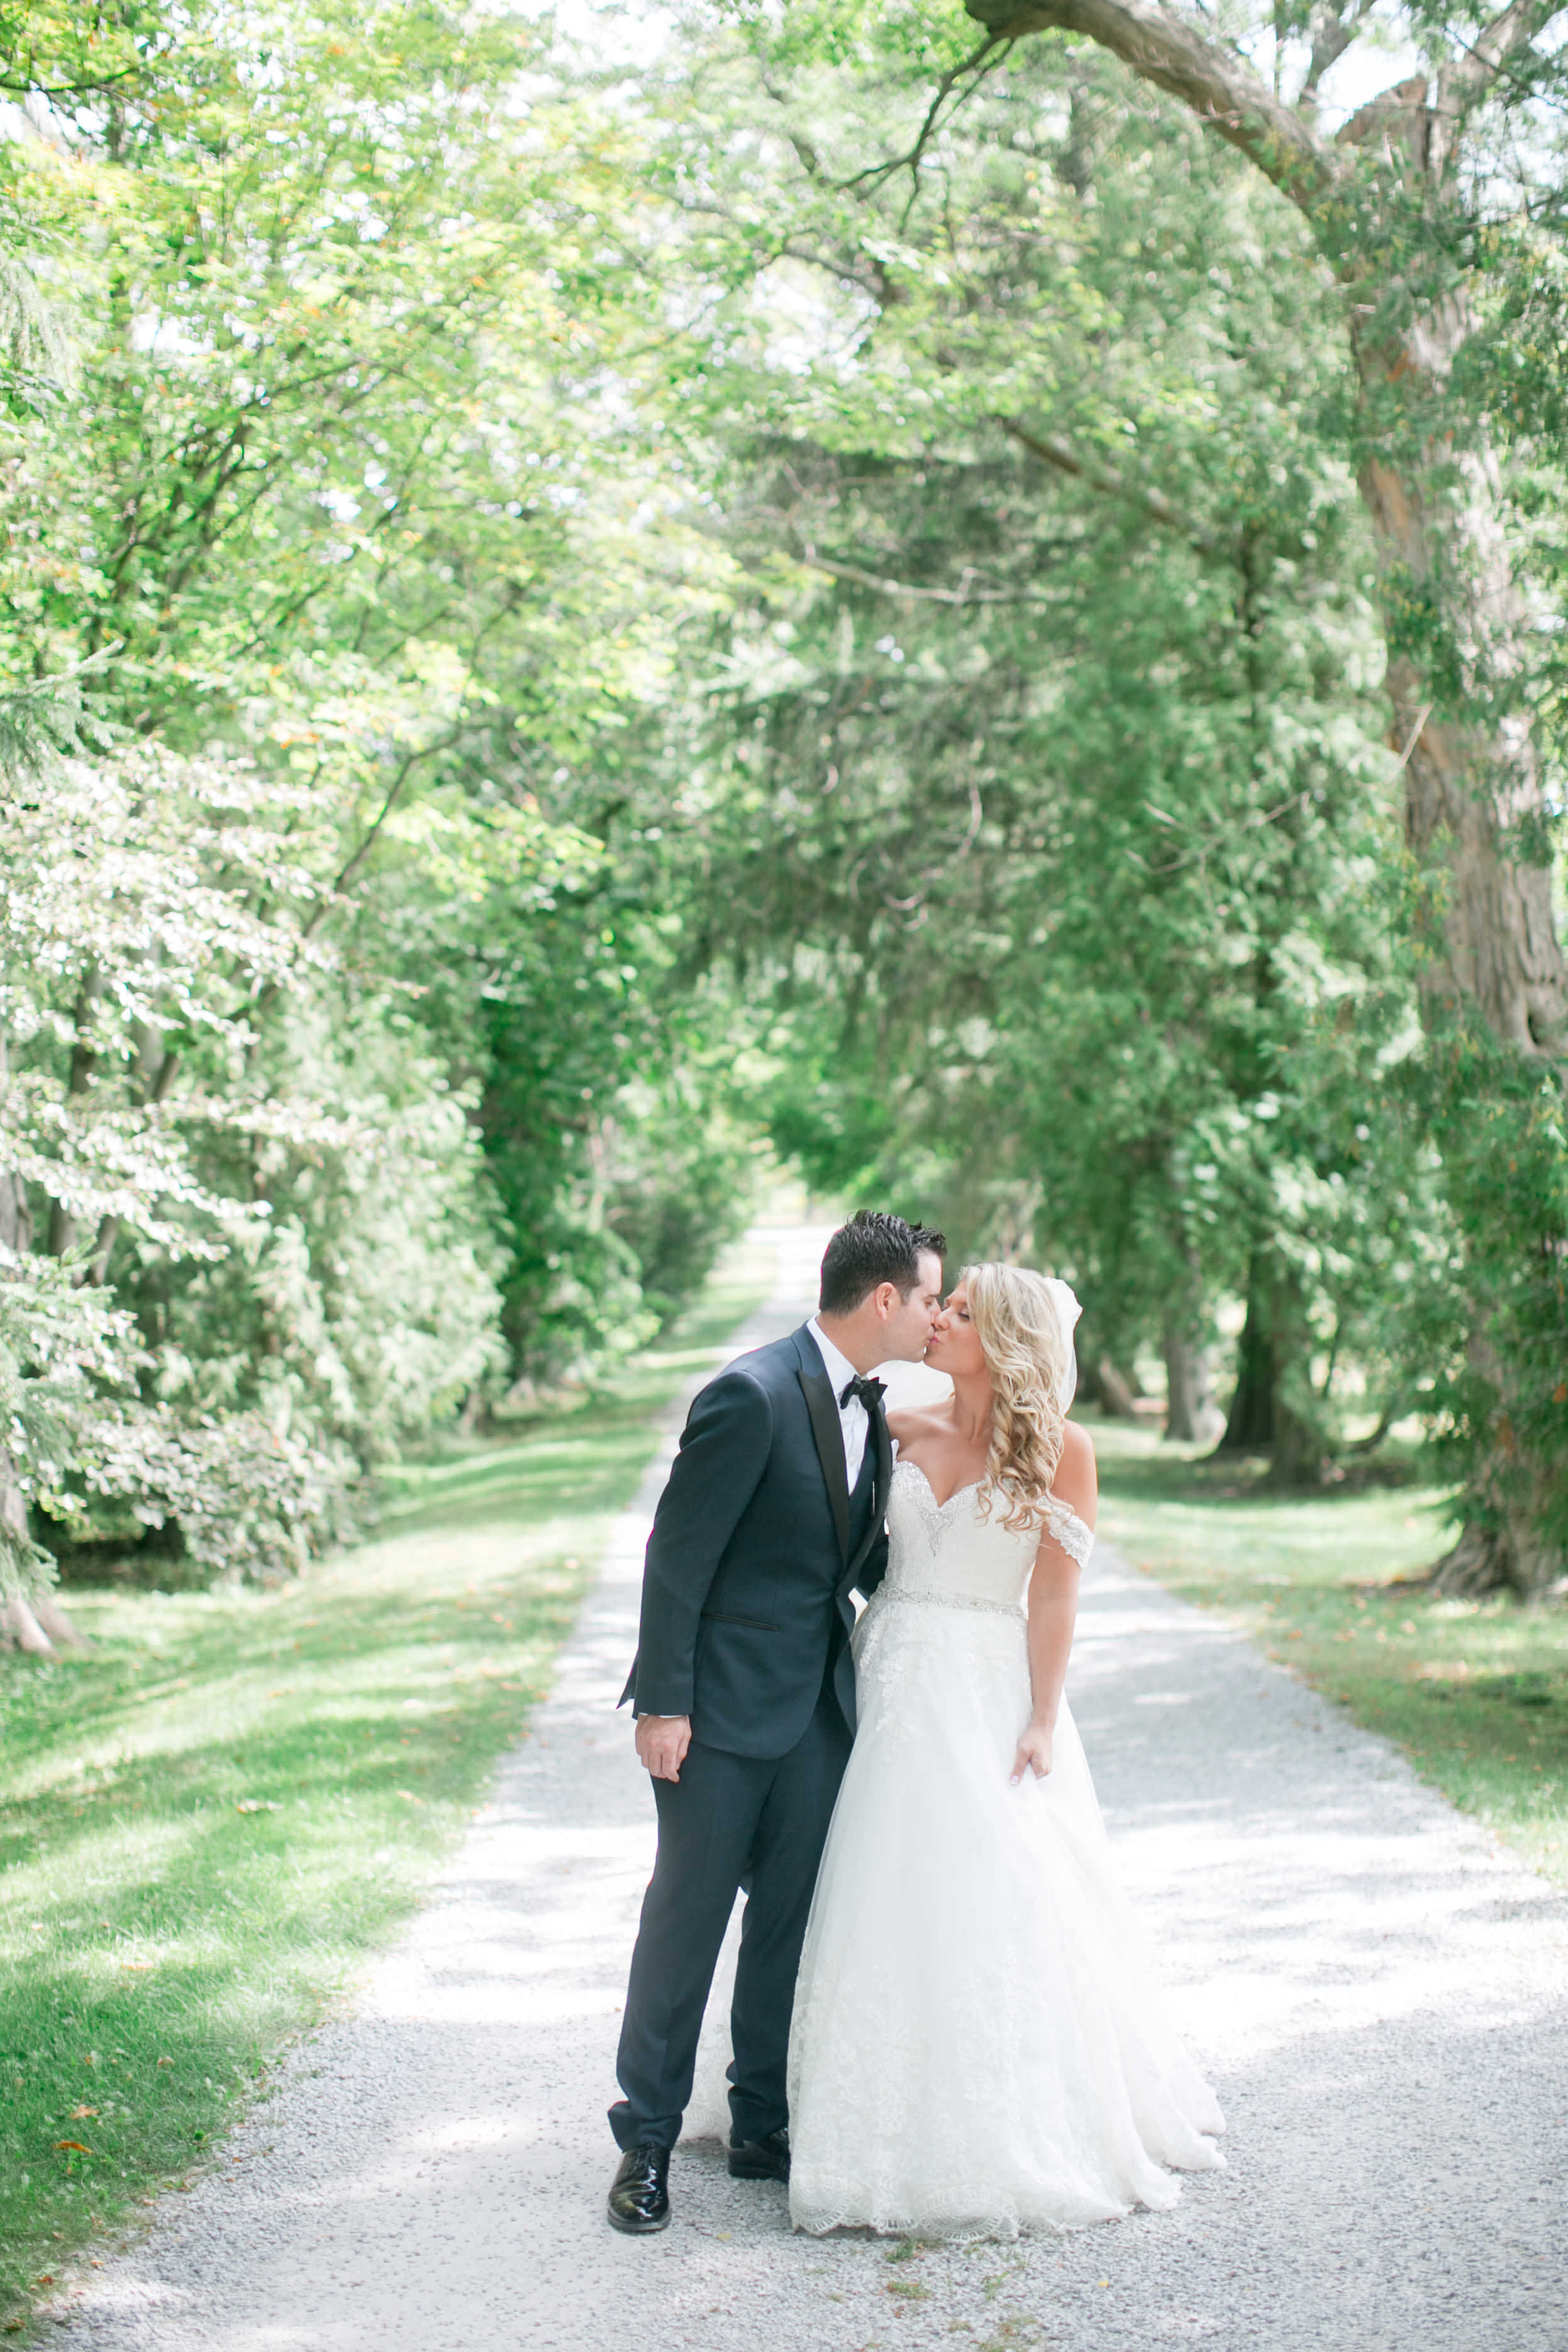 Ashley___Zac___Daniel_Ricci_Weddings___High_Res._Finals_109.jpg